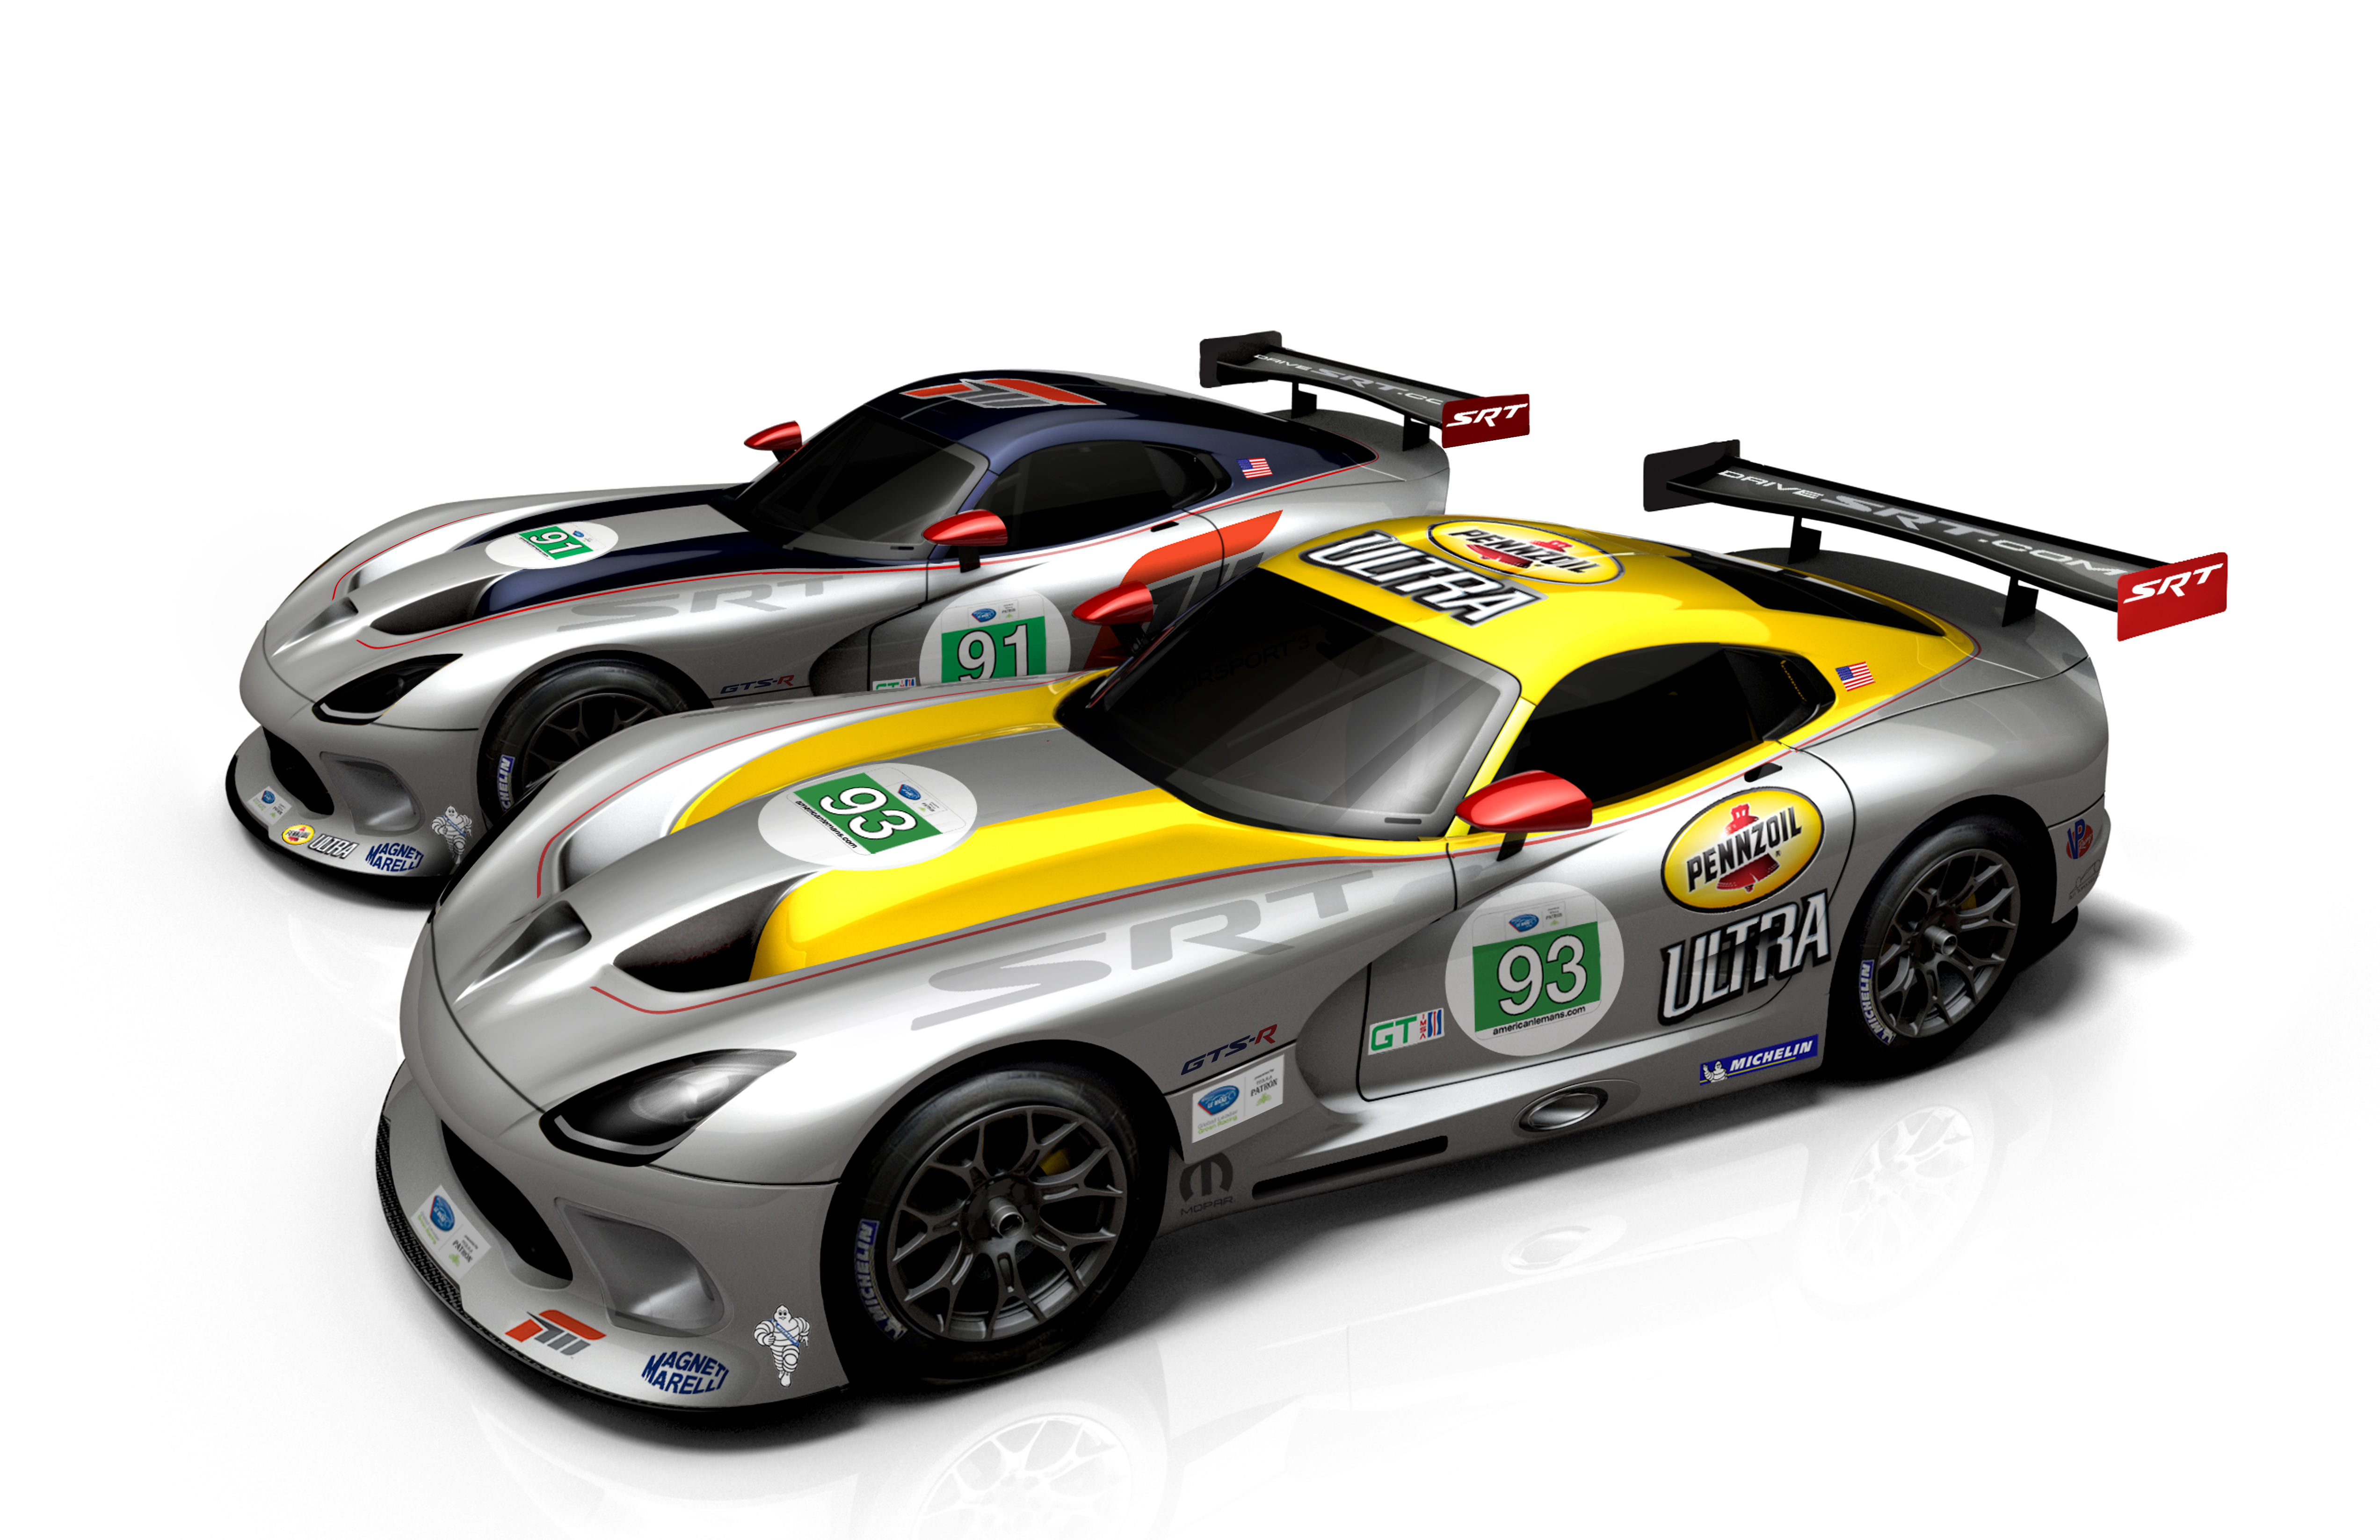 SRT Viper GTS-R set to Return to American Le Mans Series